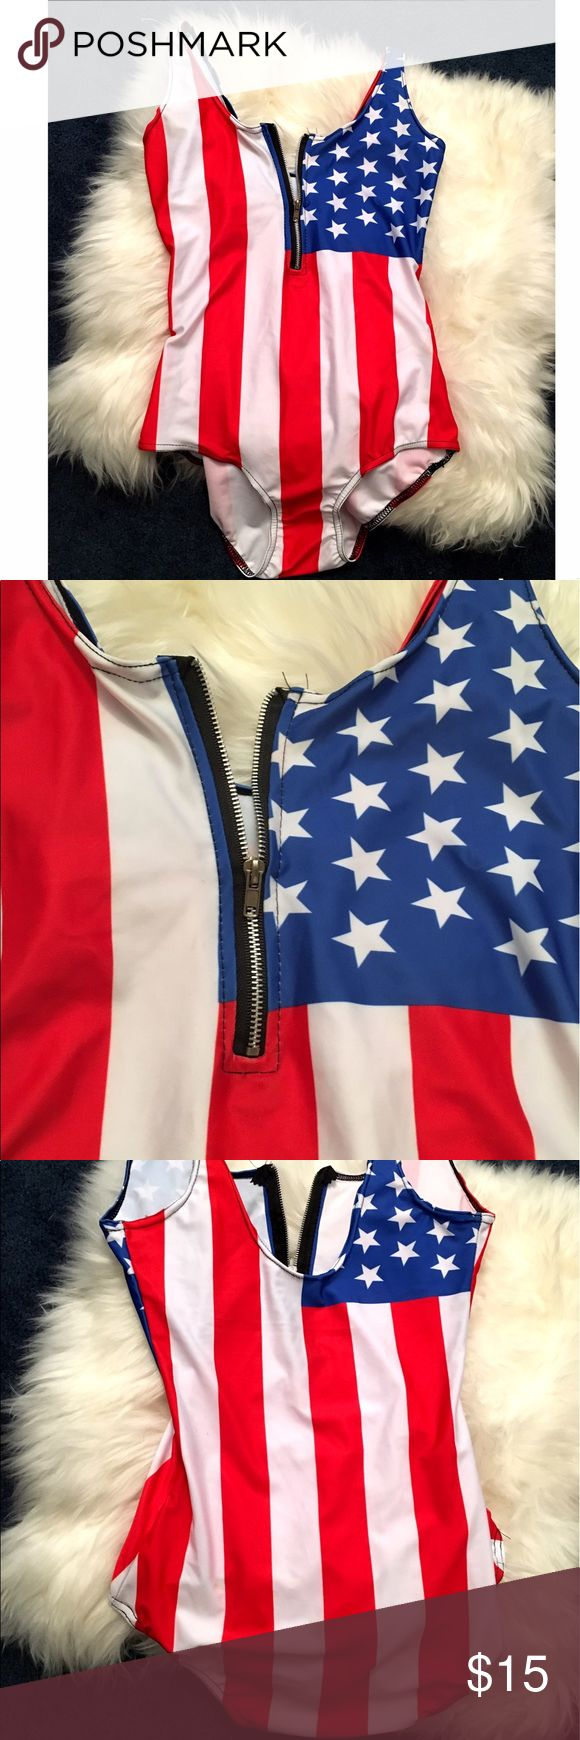 American flag one piece swimsuit American flag one piece swimsuit. Has usable zipper on front. Has never been worn Swim One Pieces